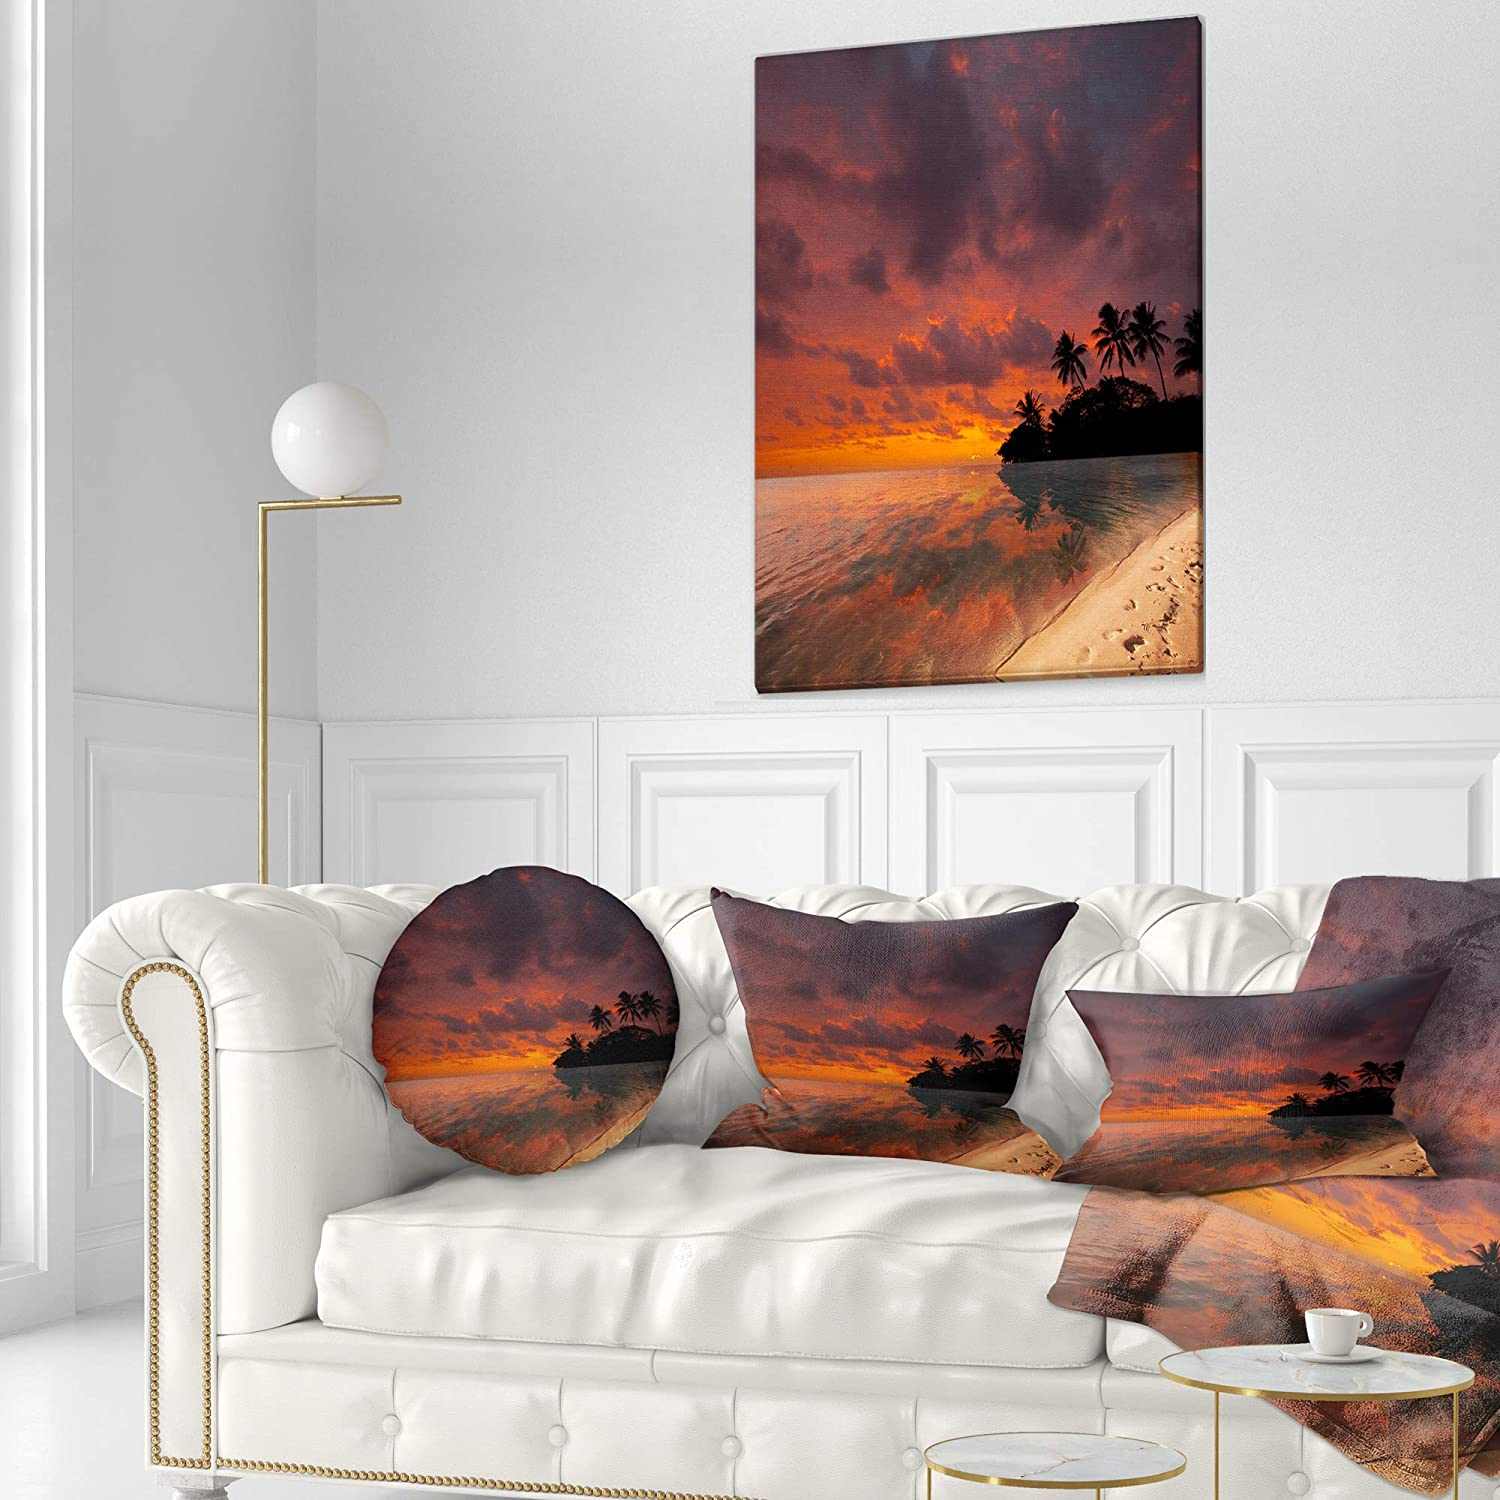 20 Round Sofa Designart CU9755-20-20-C Avenue of City Park at Night Cityscape Photography Throw Cushion Pillow Cover for Living Room Cushion Cover Printed on Both Side Pillow Insert